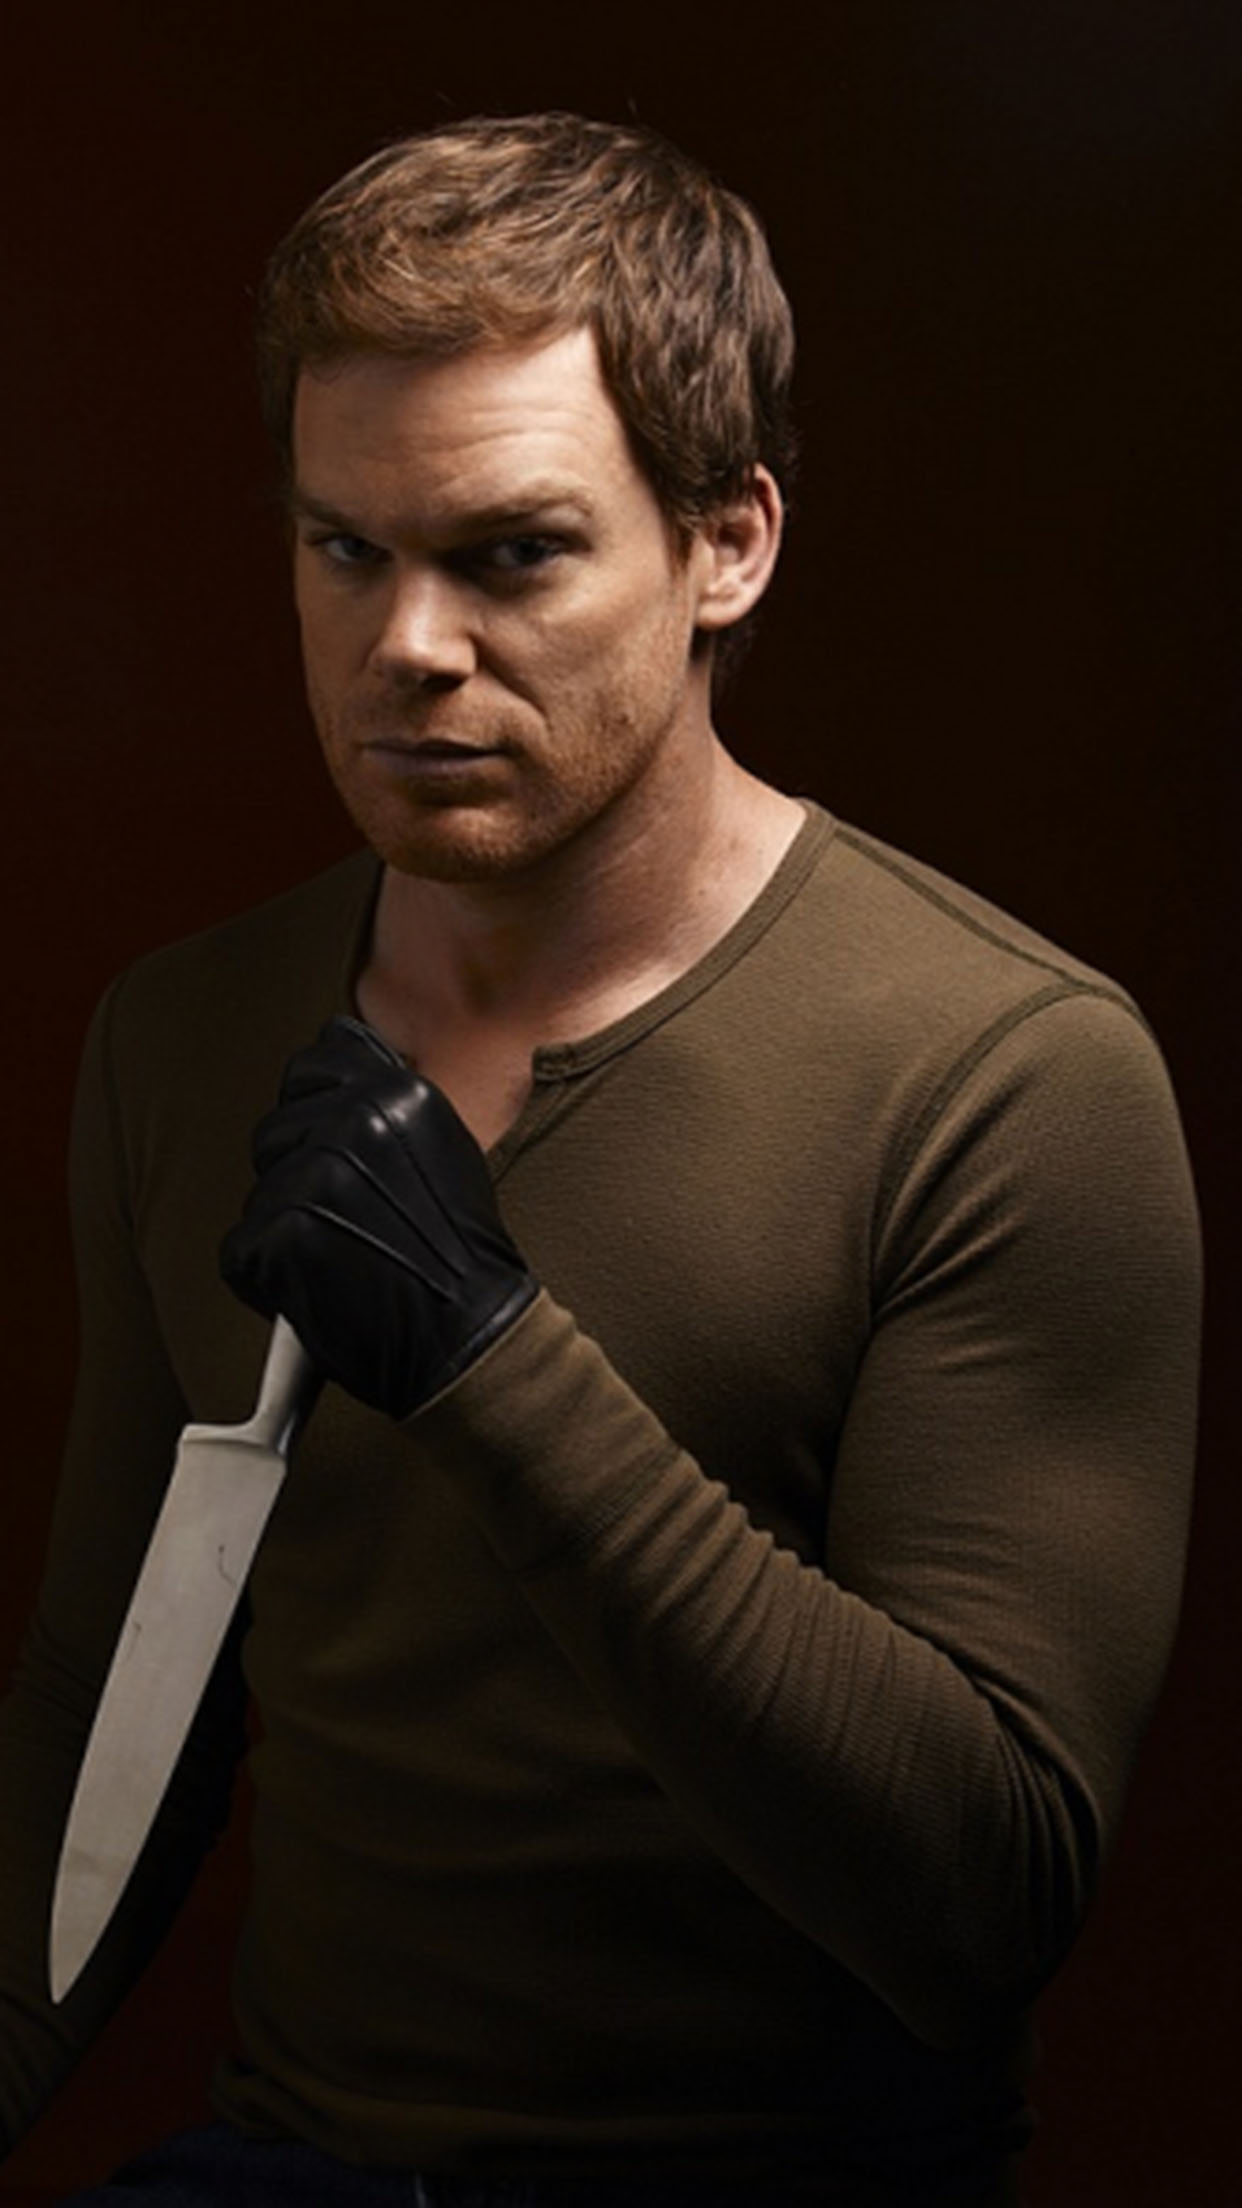 New Apple Wallpapers Iphone 7 Dexter Michael C Hall Wallpaper For Iphone X 8 7 6